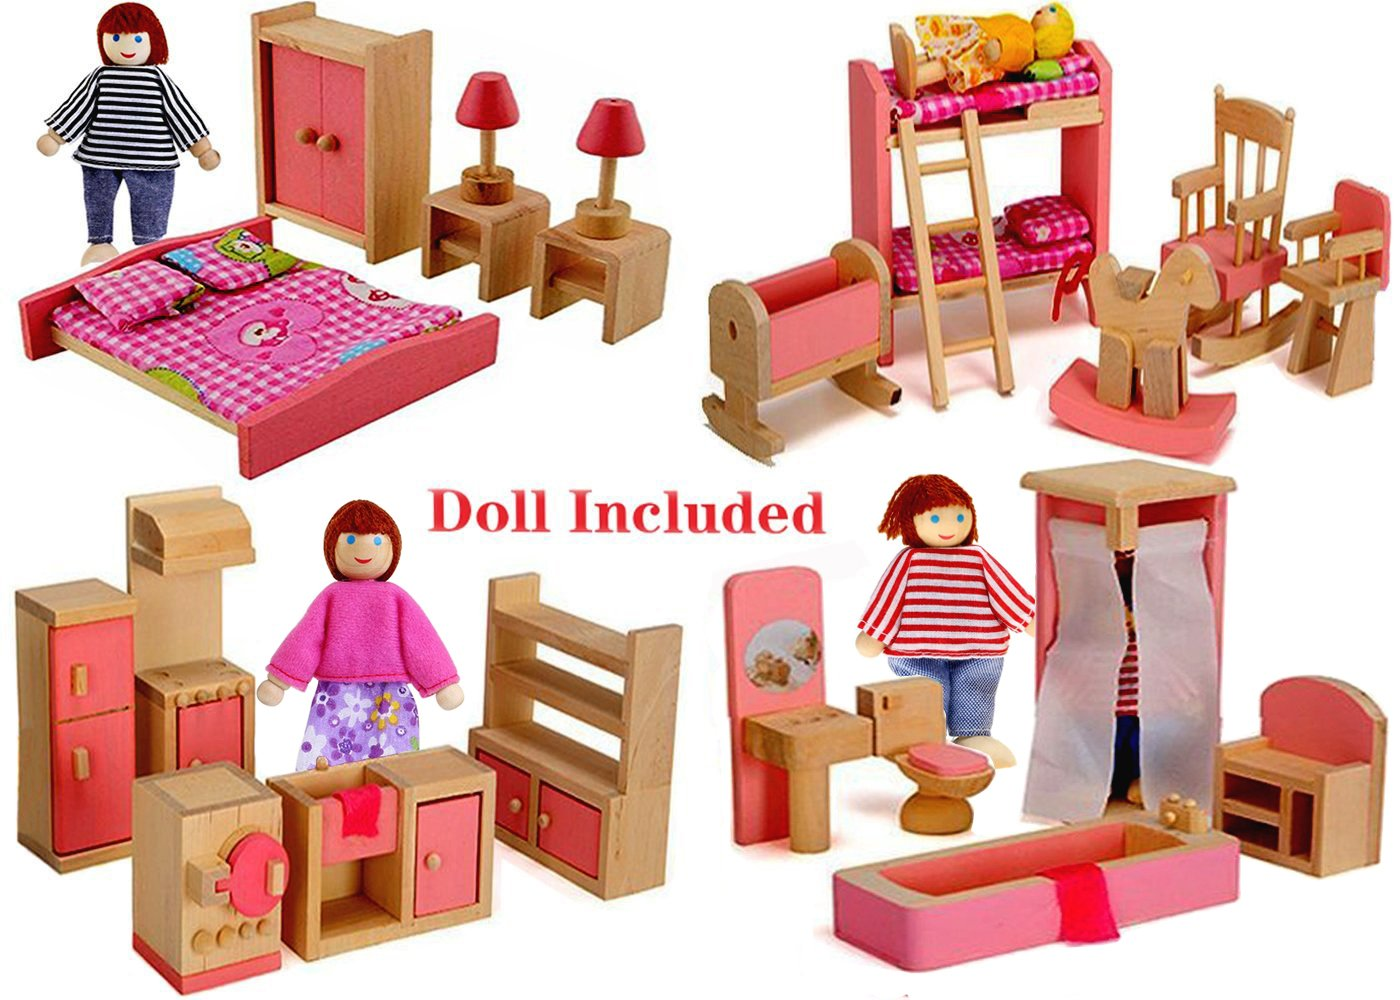 Wood Family Doll Dollhouse Furniture Set, Pink Miniature Bathroom/ Kid Room/ Bedroom/ Kitchen House Furniture Dollhouse Decoration accessories with 4 people Wooden Family Play Dolls (2-4 inches each)